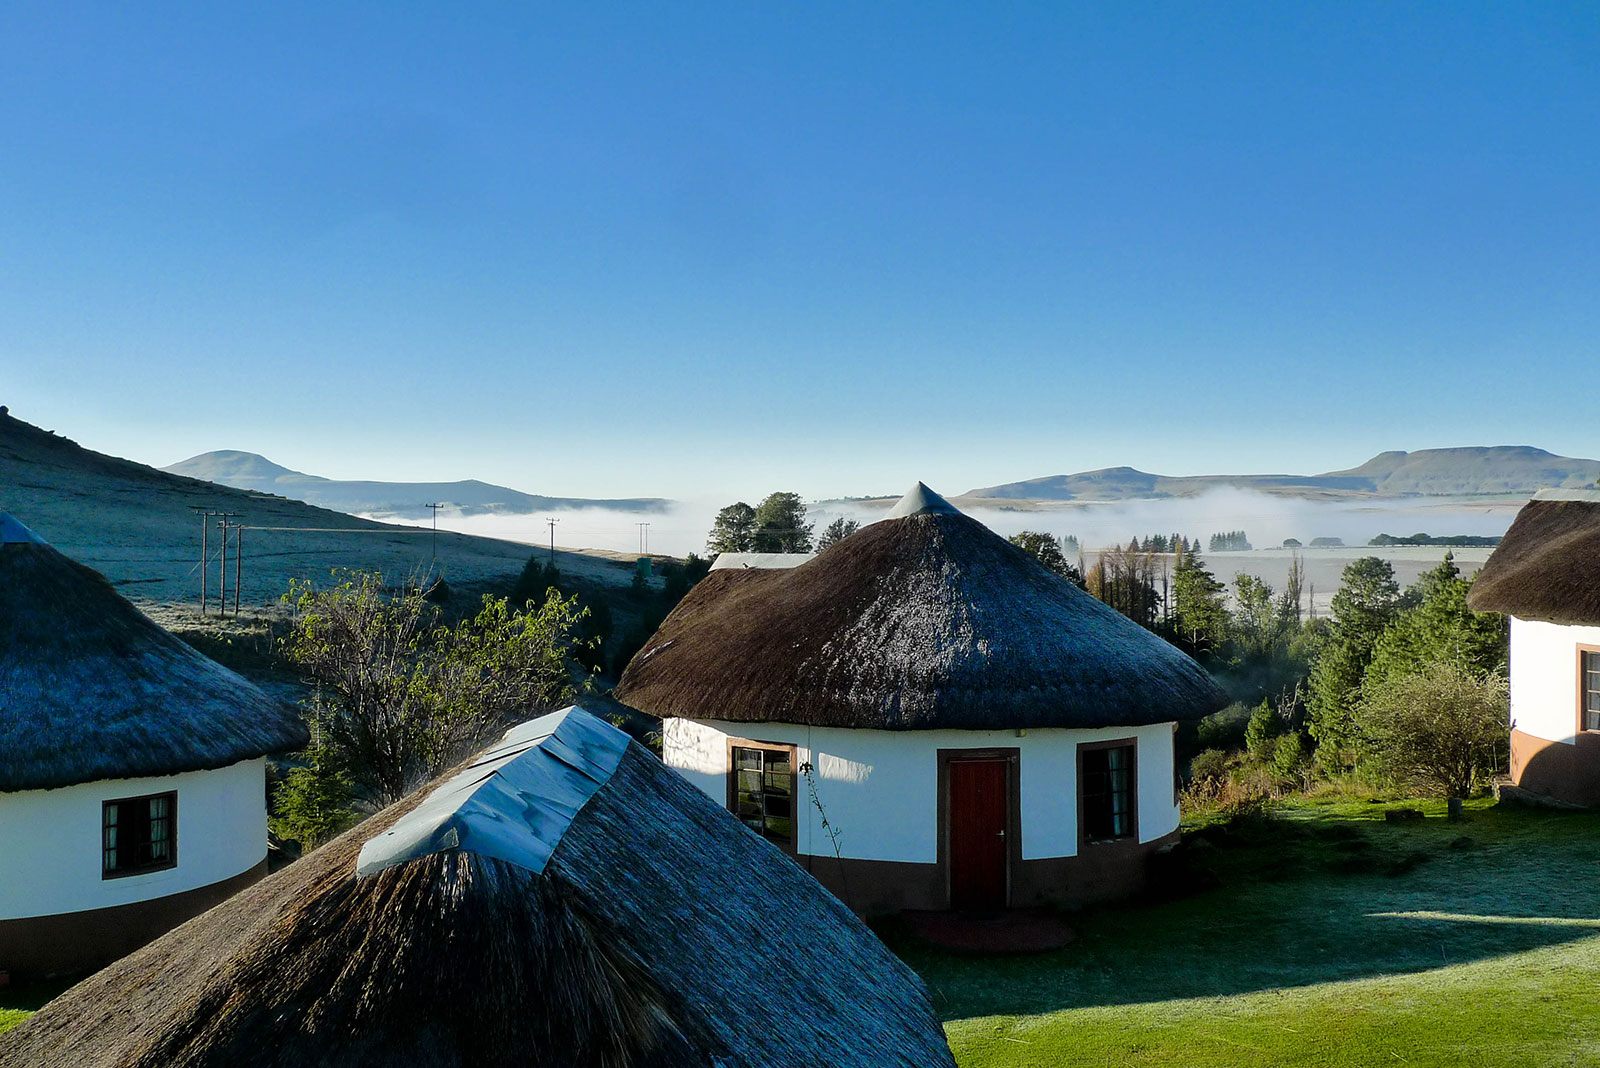 morning view of circular huts from our lodge in the Drakensberg